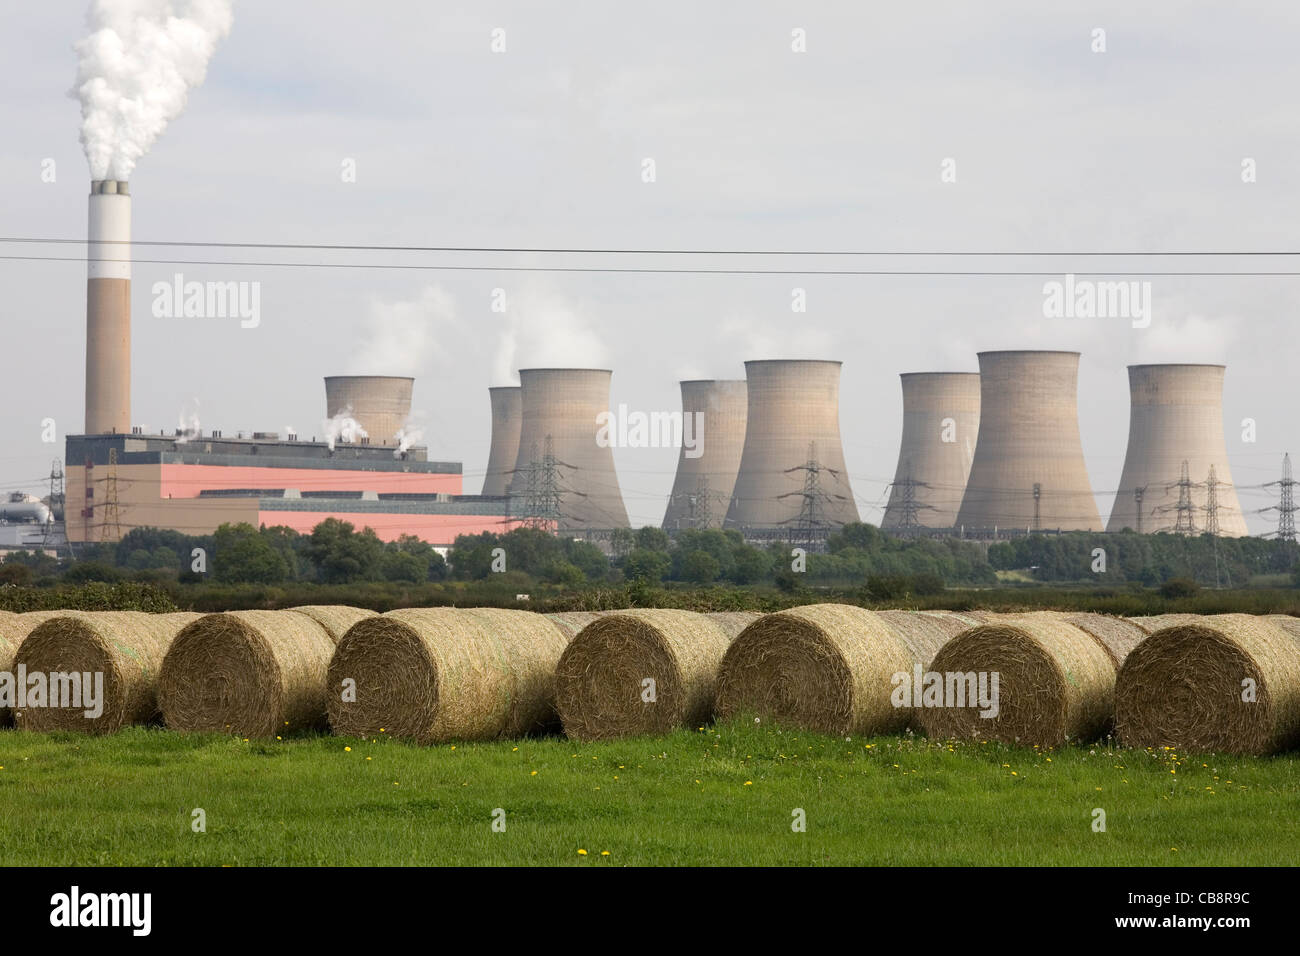 Cottam Power Station Cooling Towers viewed over Round Hay Bales in Summer Field - Stock Image